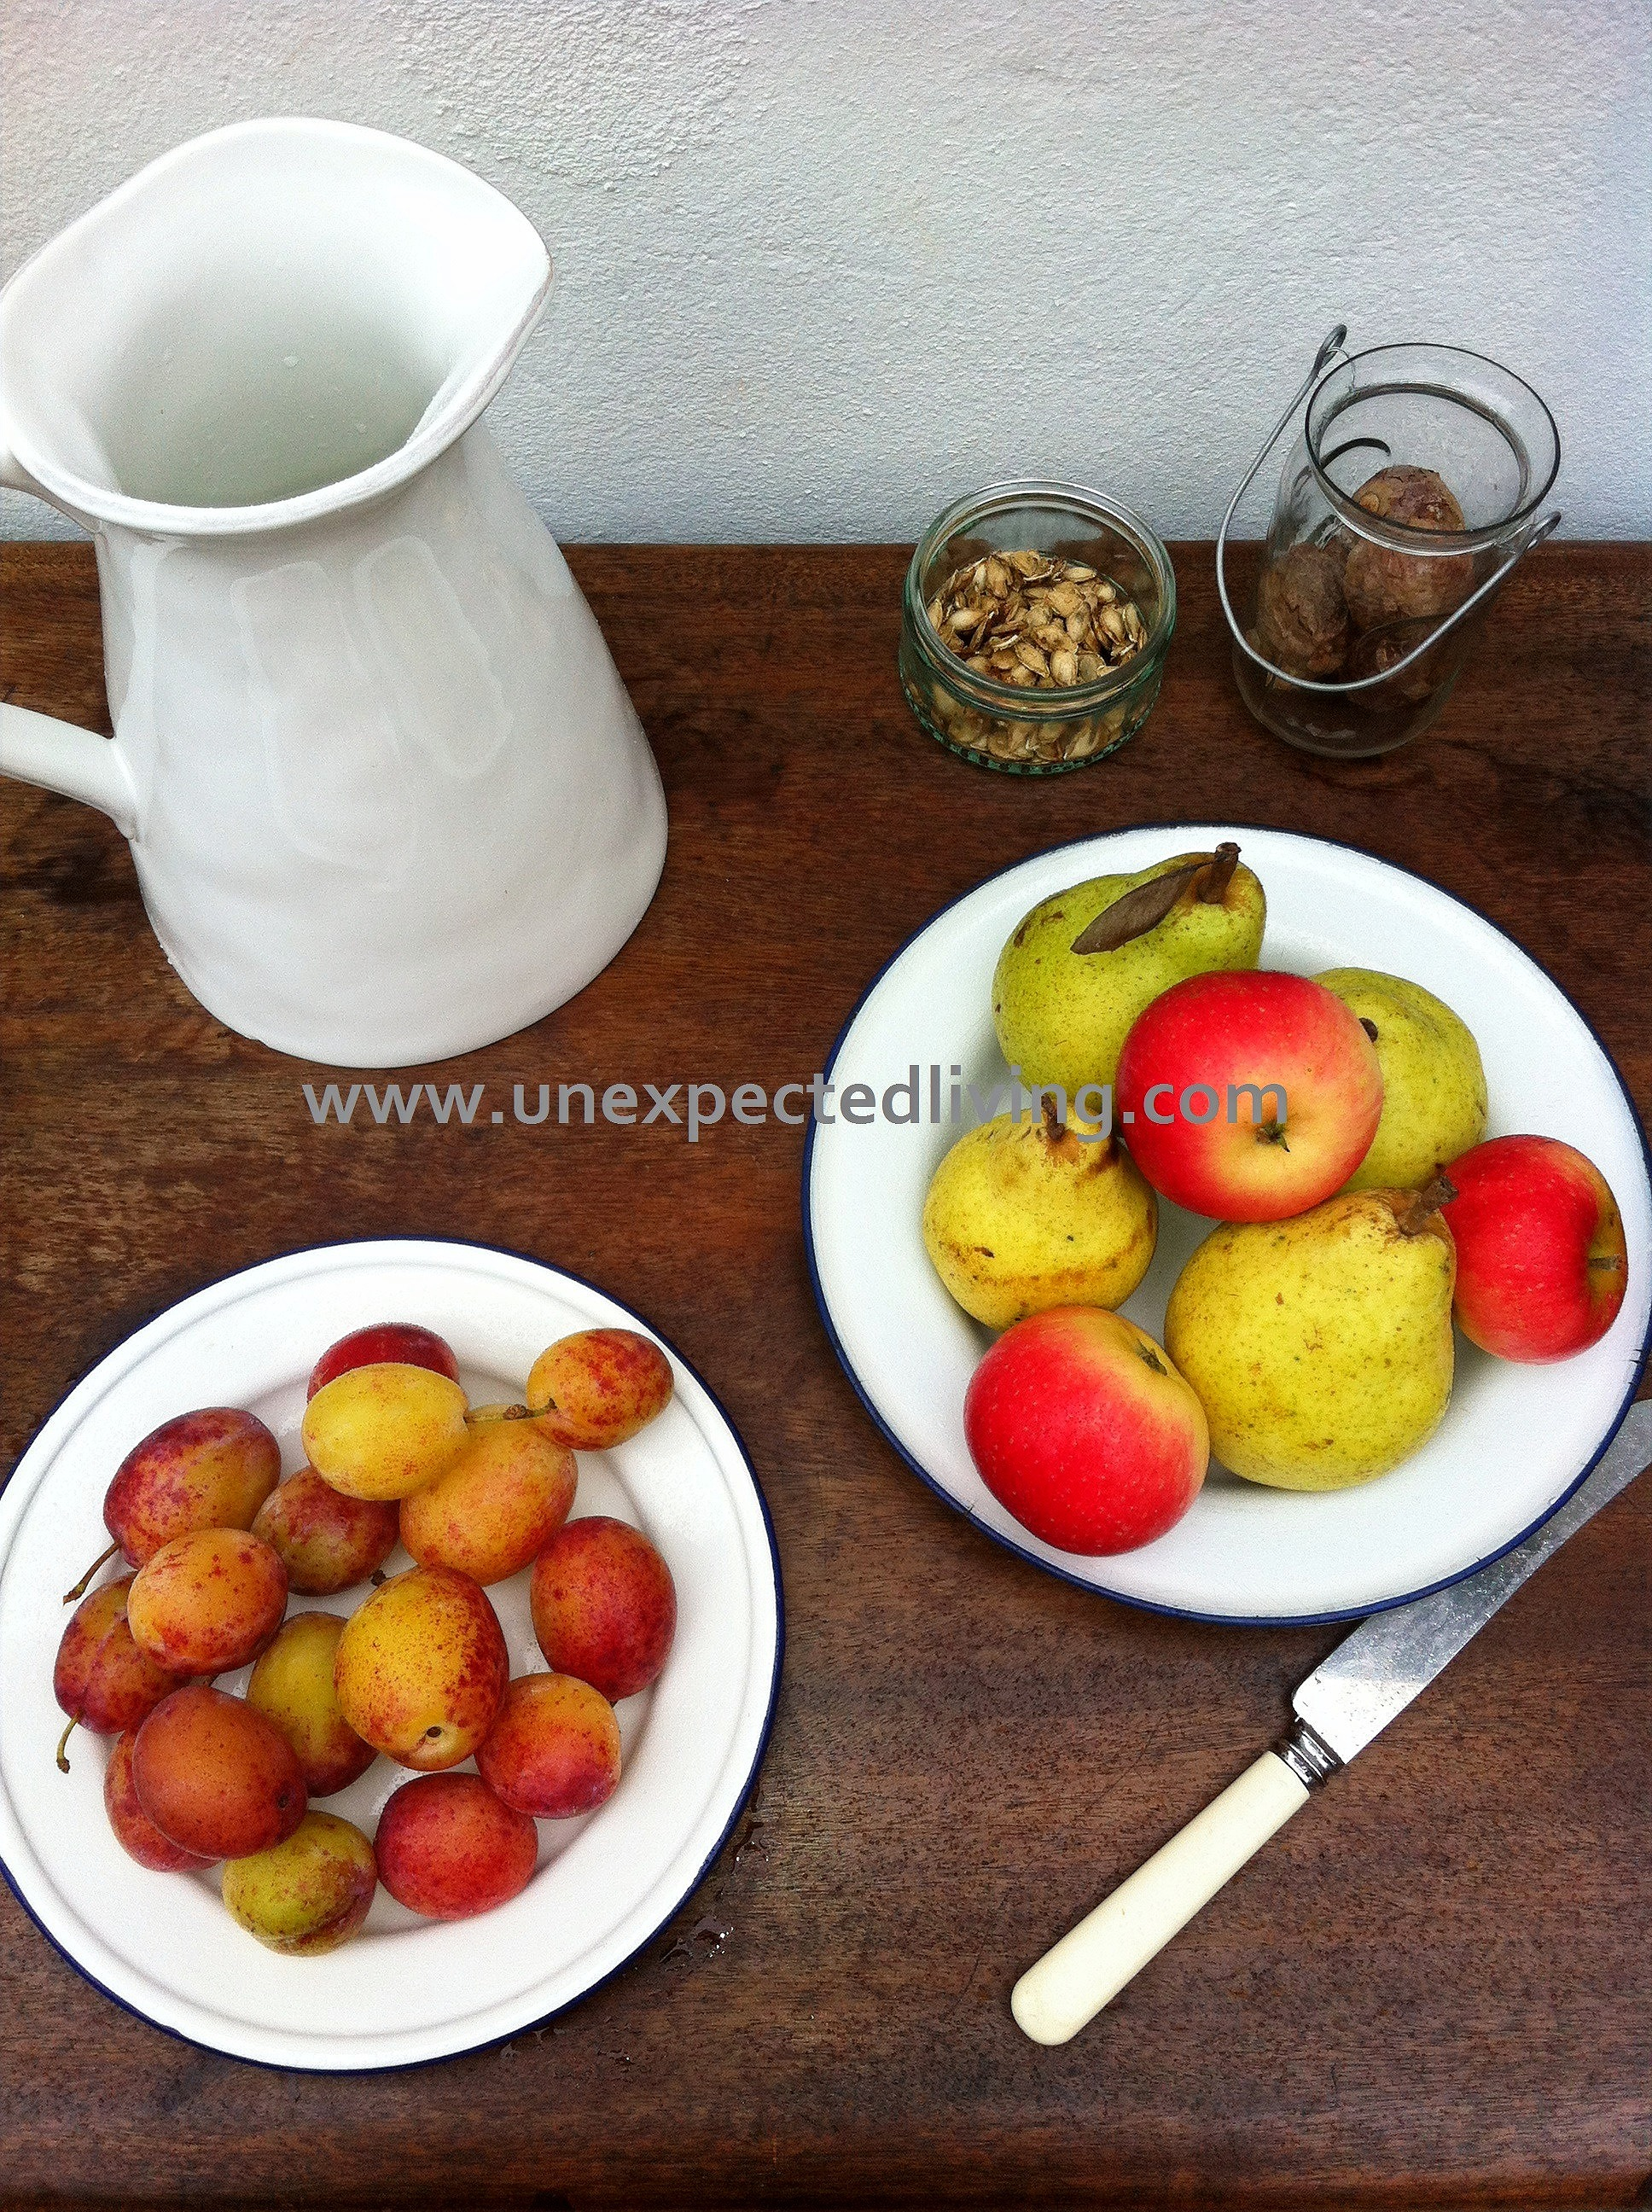 Unexpected Living Home Styling Fruits